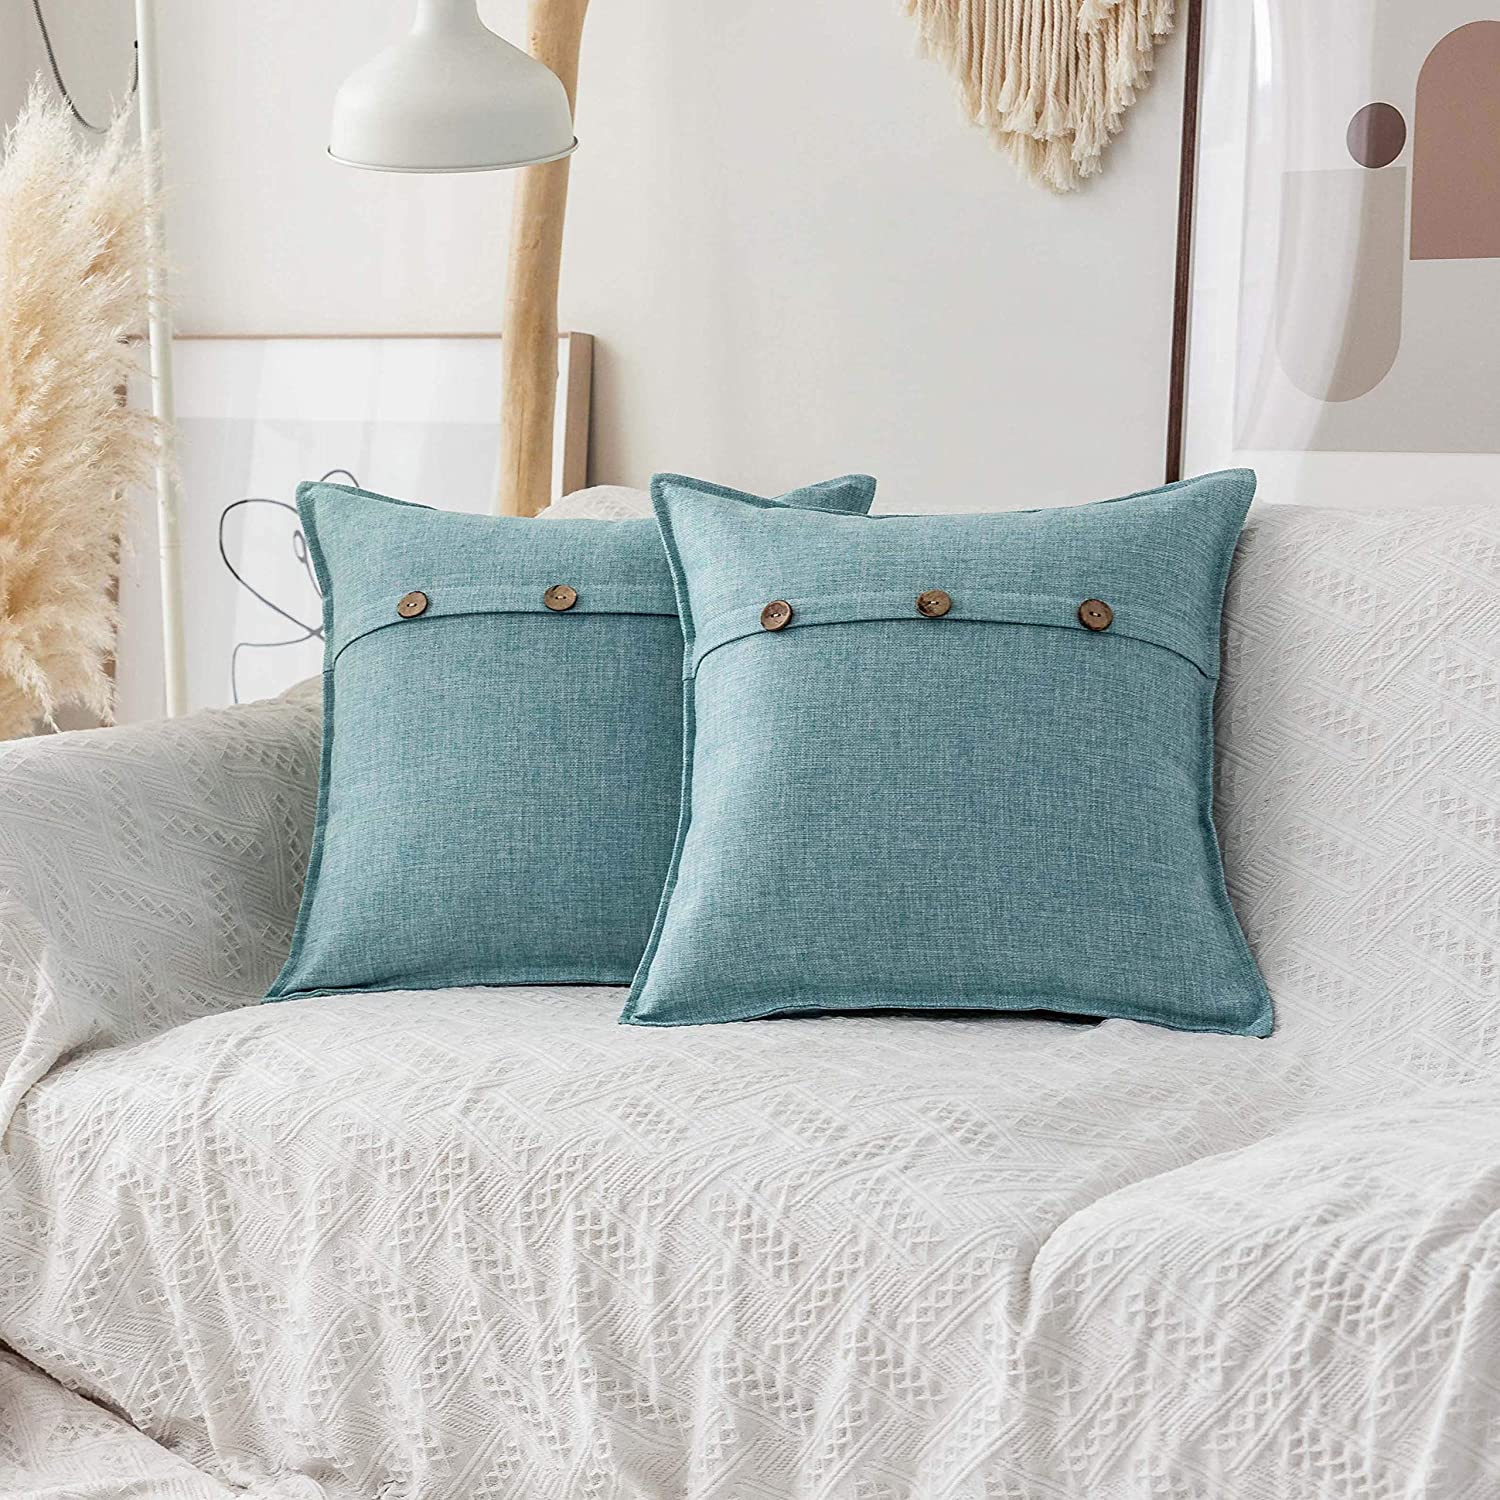 Home Brilliant Decorative Pillows Covers with Buttons Lined Linen Cushion Covers for Bed Couch, Set of 2, 18x18 inches(45cm), Teal